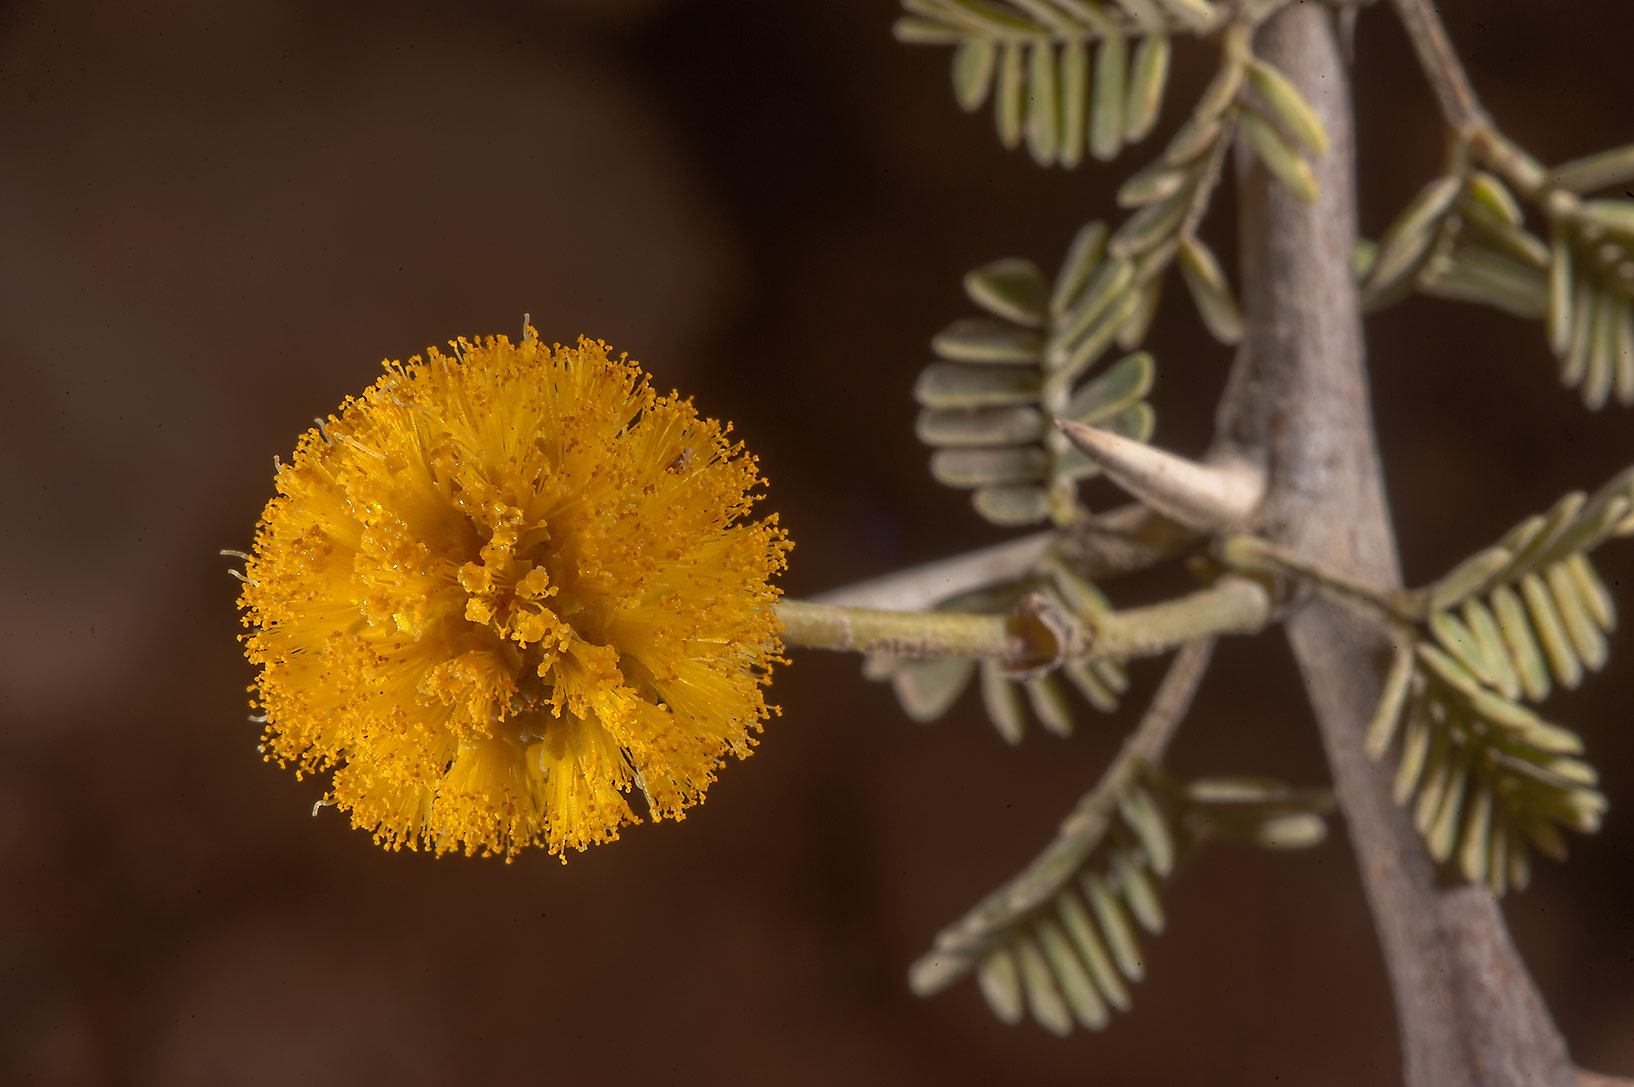 Yellow flower on a Acacia ehrenbergiana in Uwaynat Bin Husayn near Simaisma. Qatar